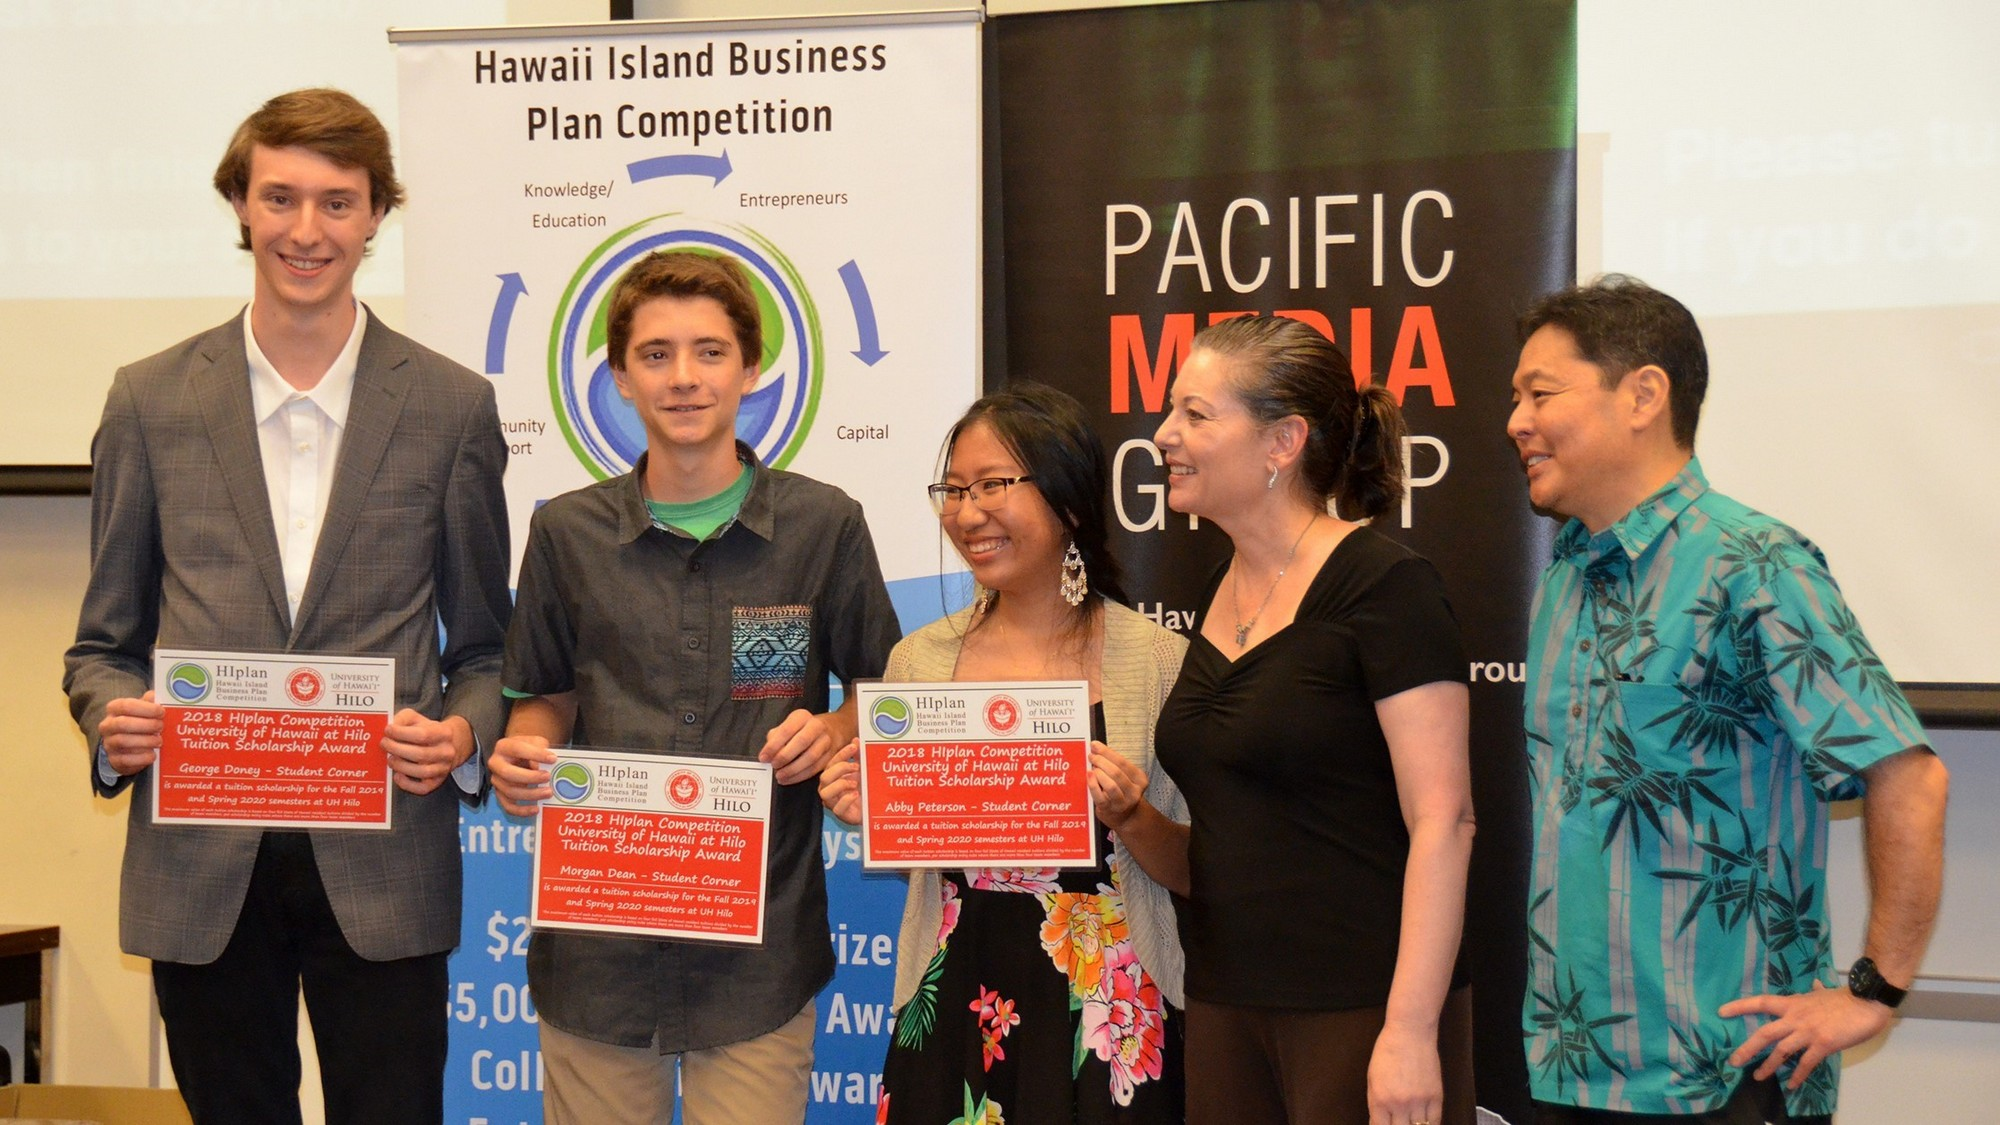 George Donev, Morgan Dean, Abby Peterson, Emmeline DePillis and Jason Ueki pose for group photo. The students are holding certificates for their win. In the back is poster with words: Hawaii Island Business Plan Competition.